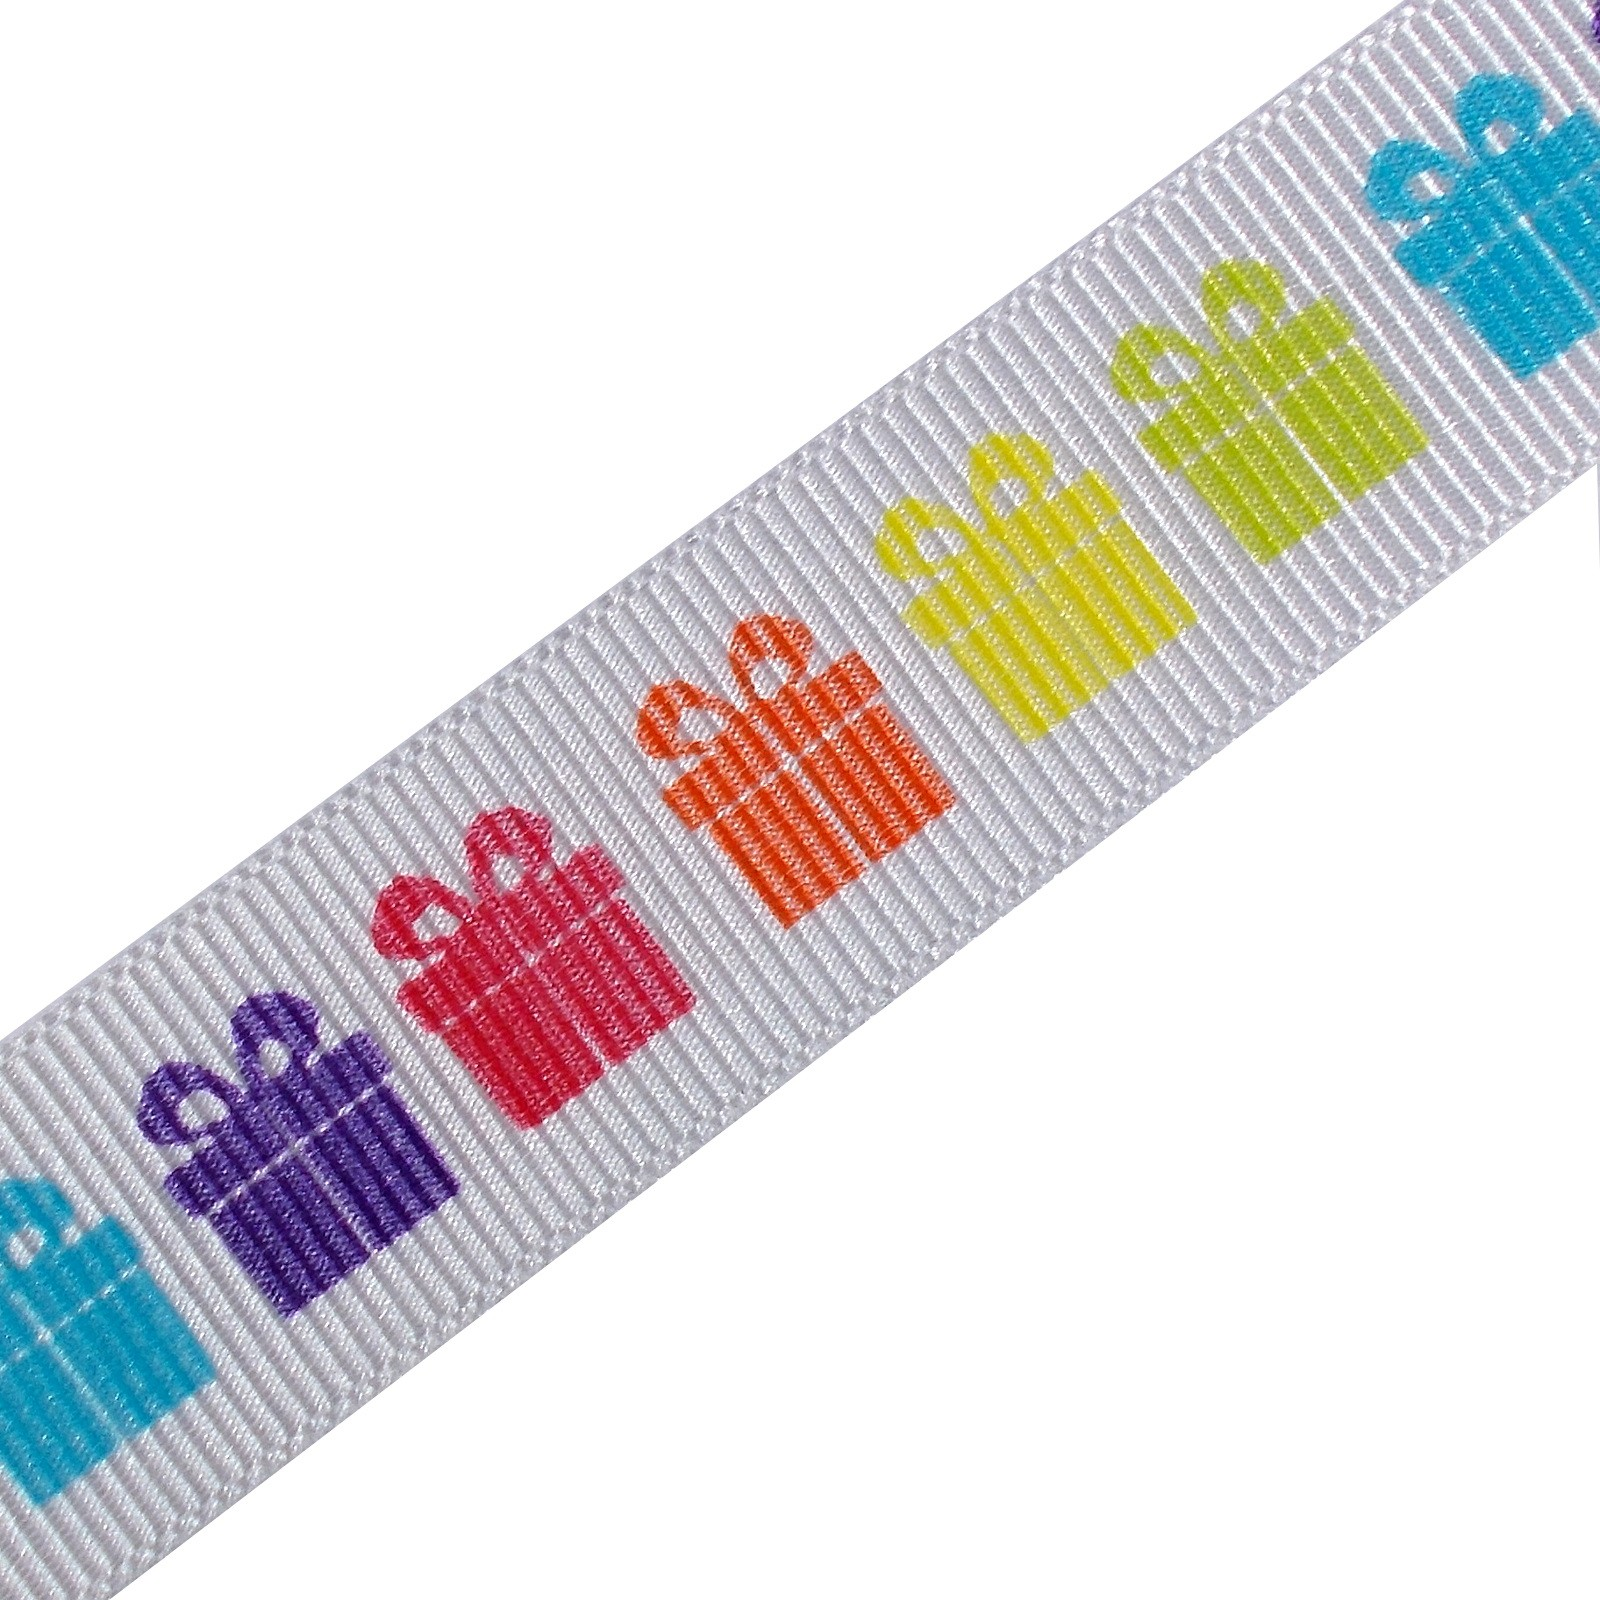 Berisfords Bright Rainbow Grosgrain Ribbon 16mm wide Parcel Gifts 3 metre length